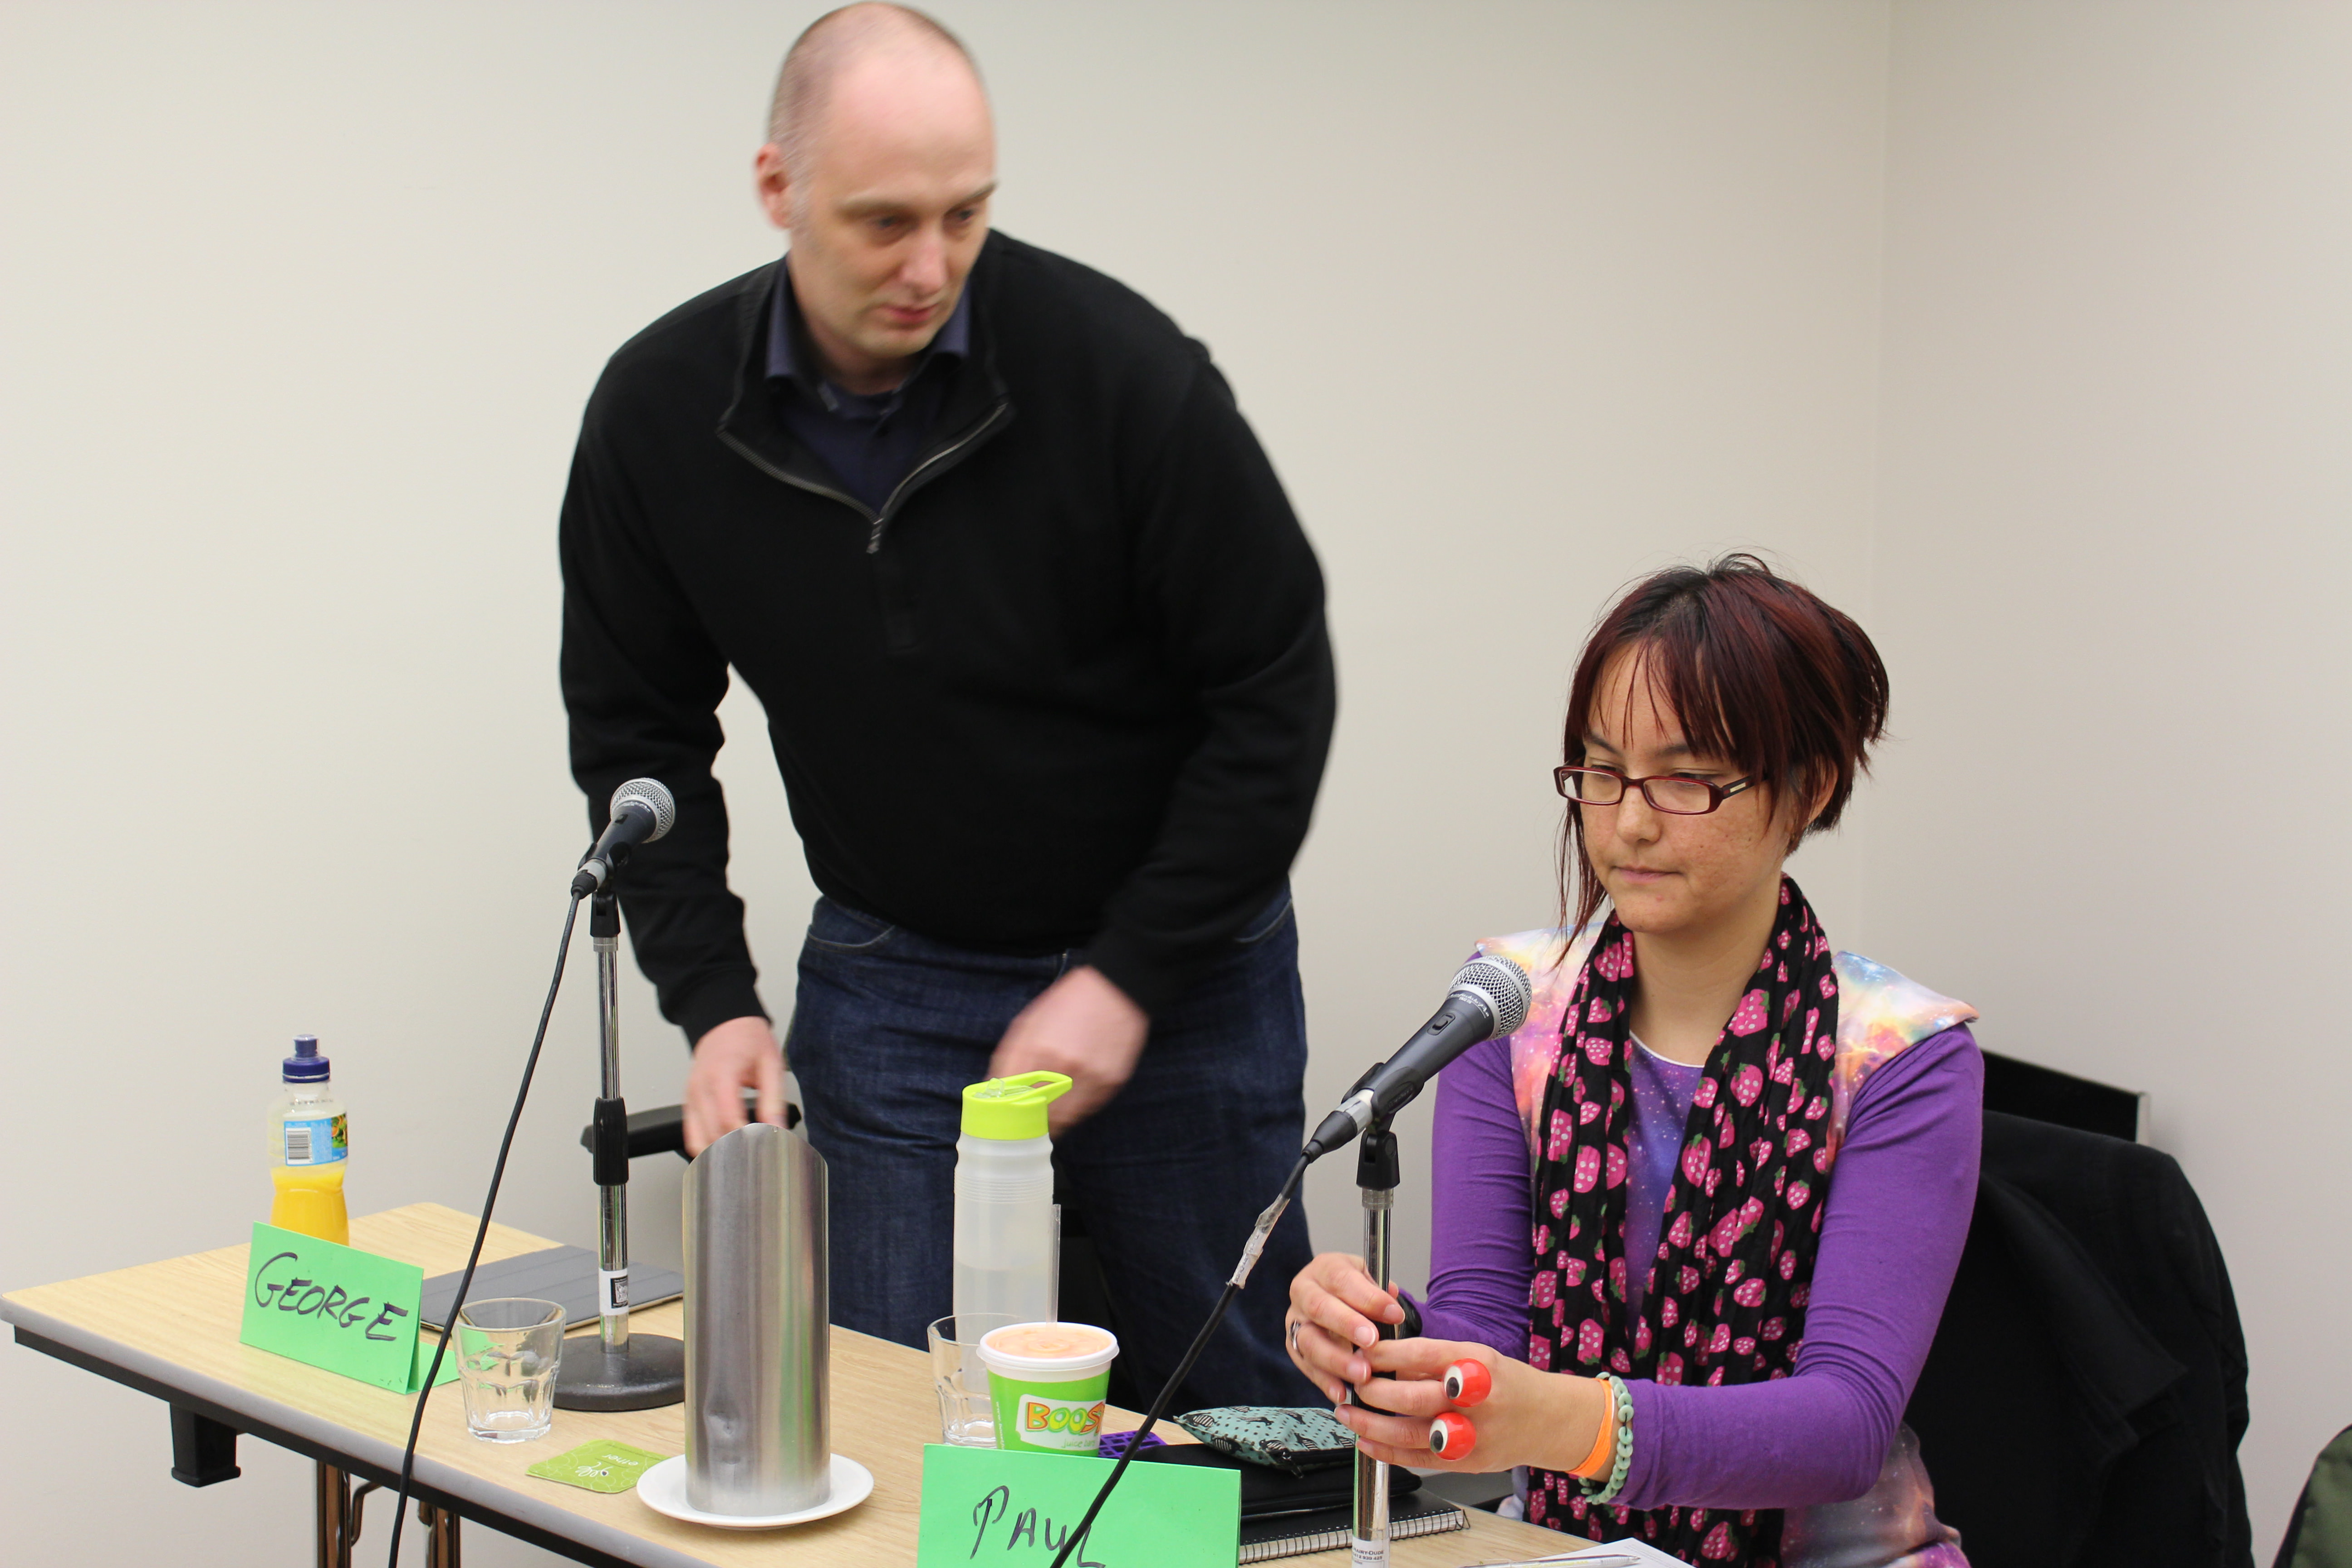 David Witteveen and Stepanie Lai setting up for the Cultural Misappropriations panel